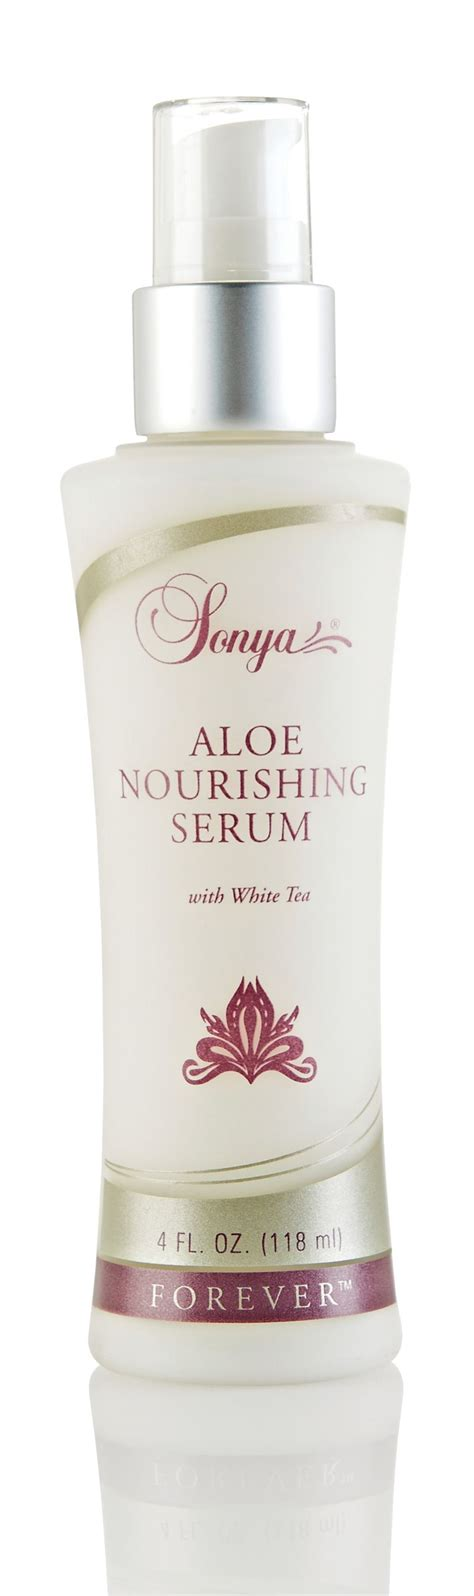 Serum Beautygirl Aloe aloe nourishing serum from forever living products